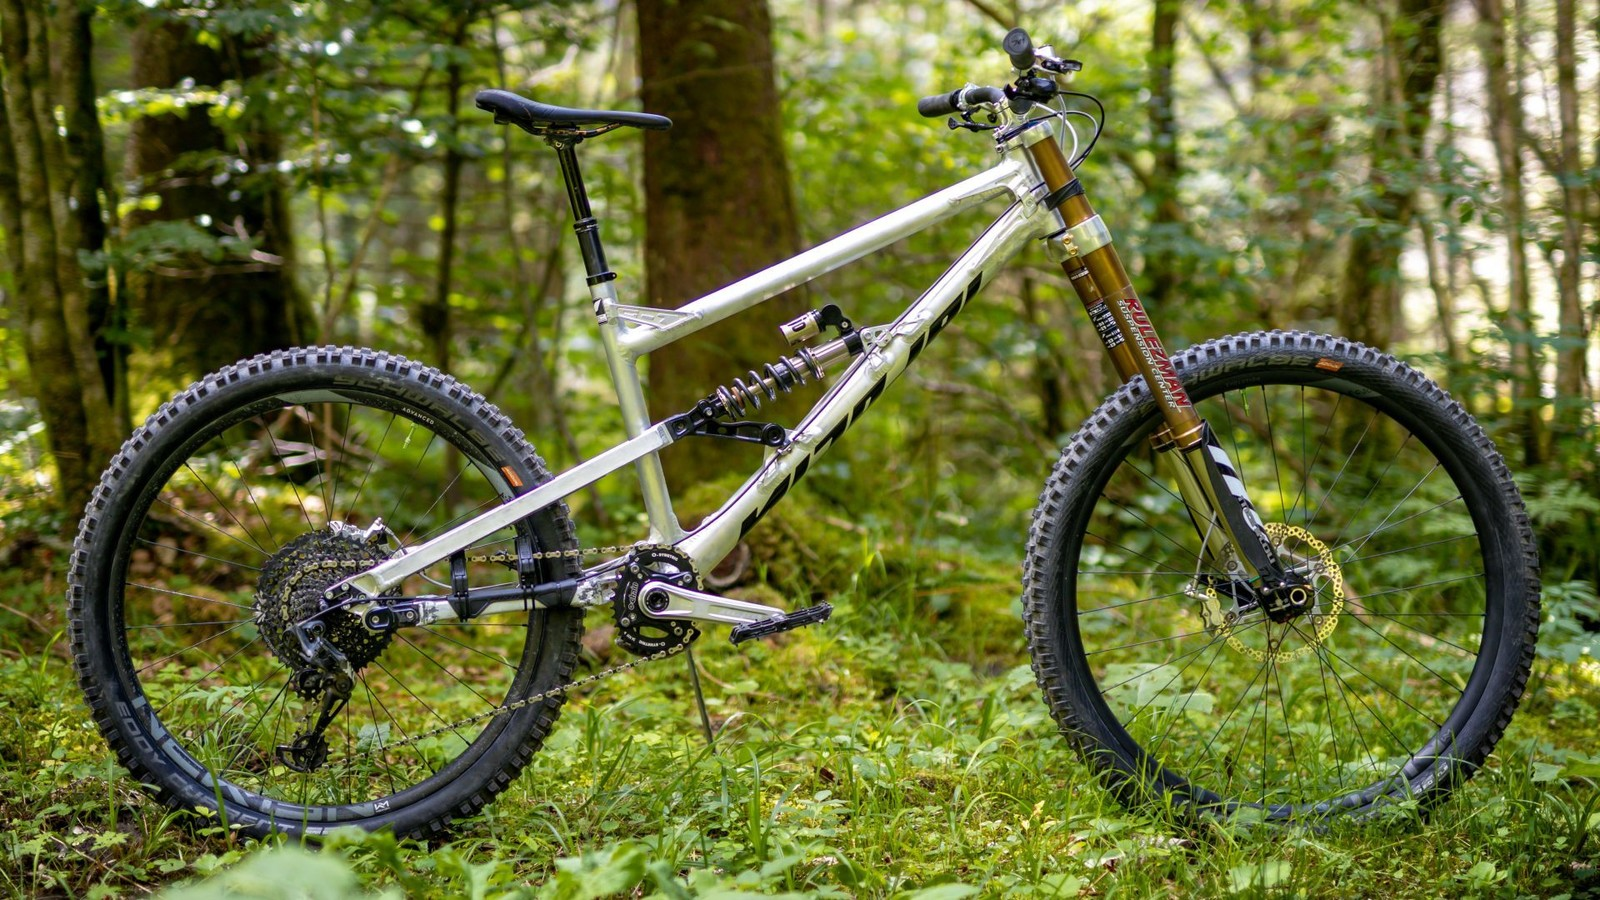 Ultra-Long, 210mm Travel Enduro Machine - Is This the Ultimate MTB?